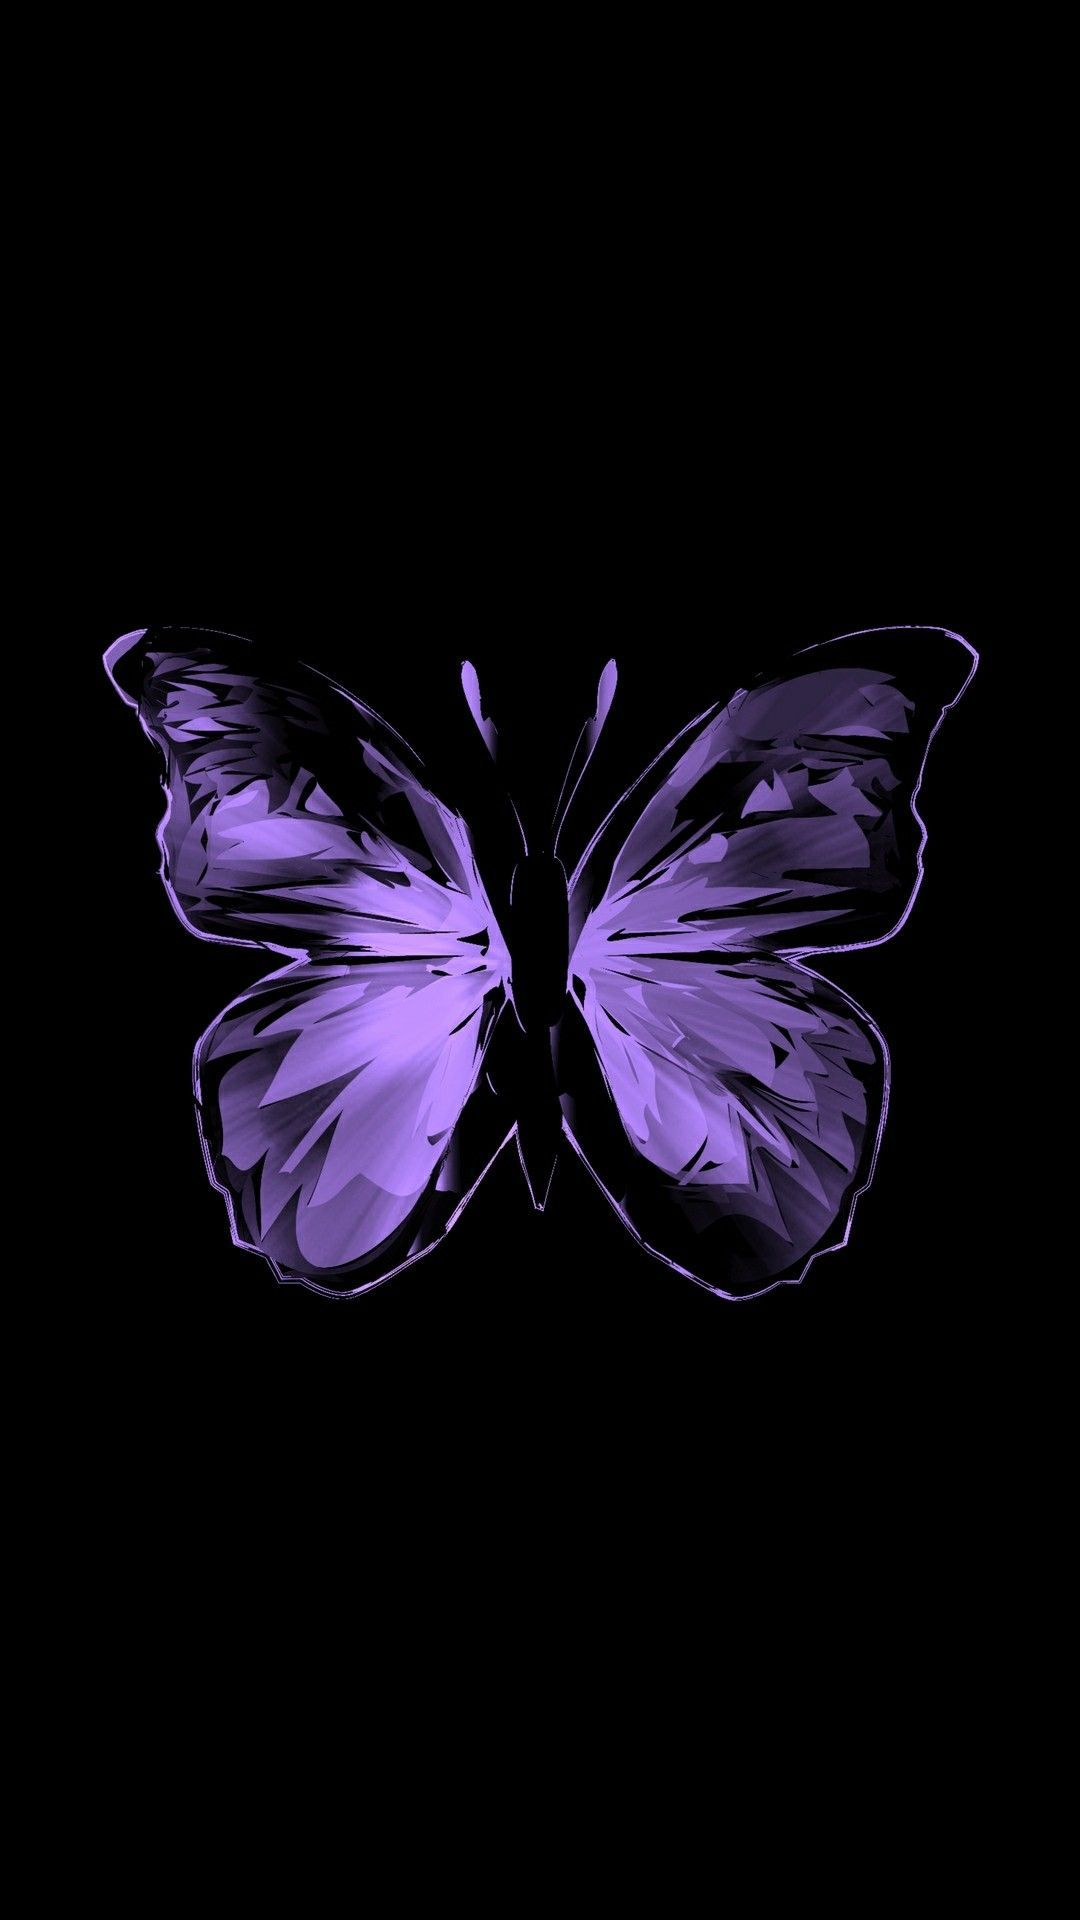 Dark Purple Butterfly Wallpapers Top Free Dark Purple Butterfly Backgrounds Wallpaperaccess